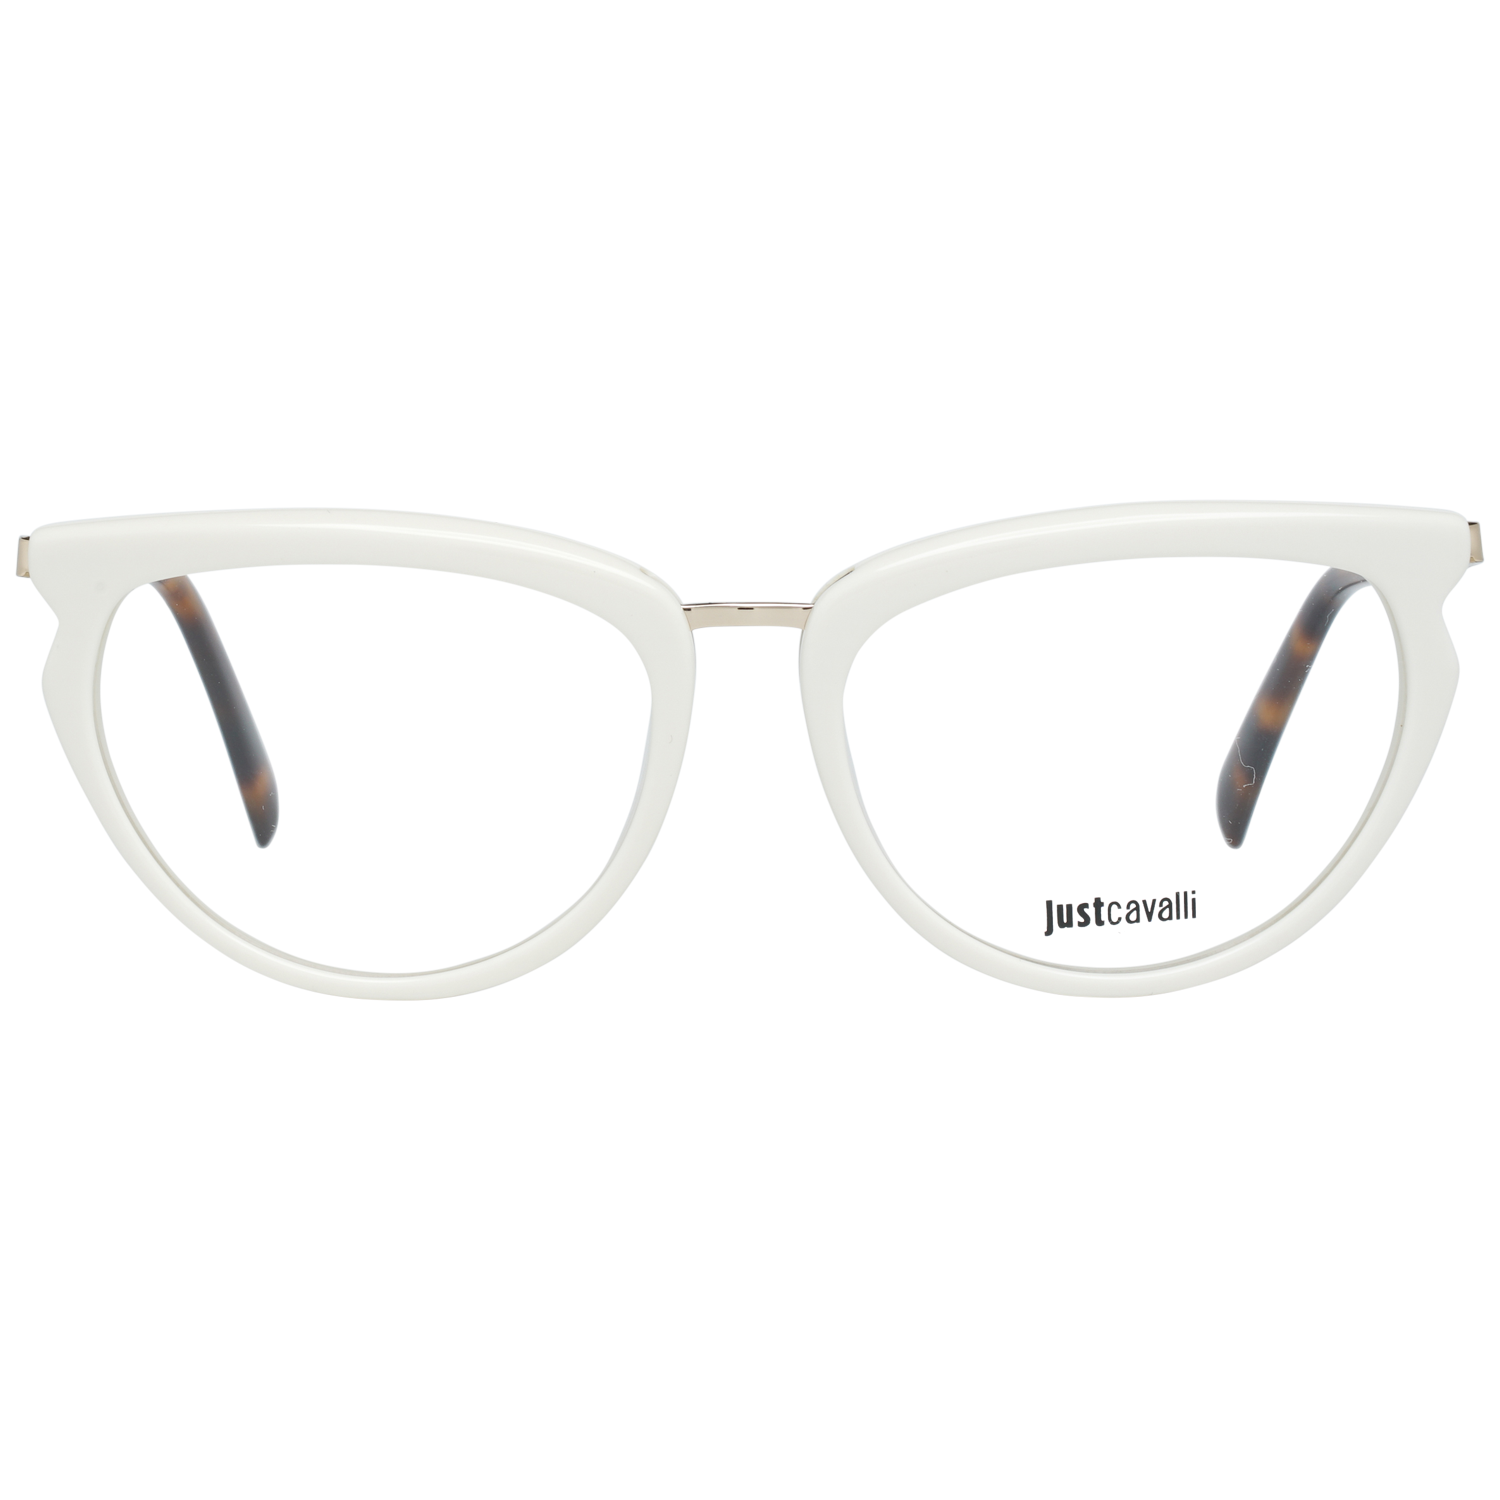 Just Cavalli Optical Frame JC0856 024 53 Women Cream